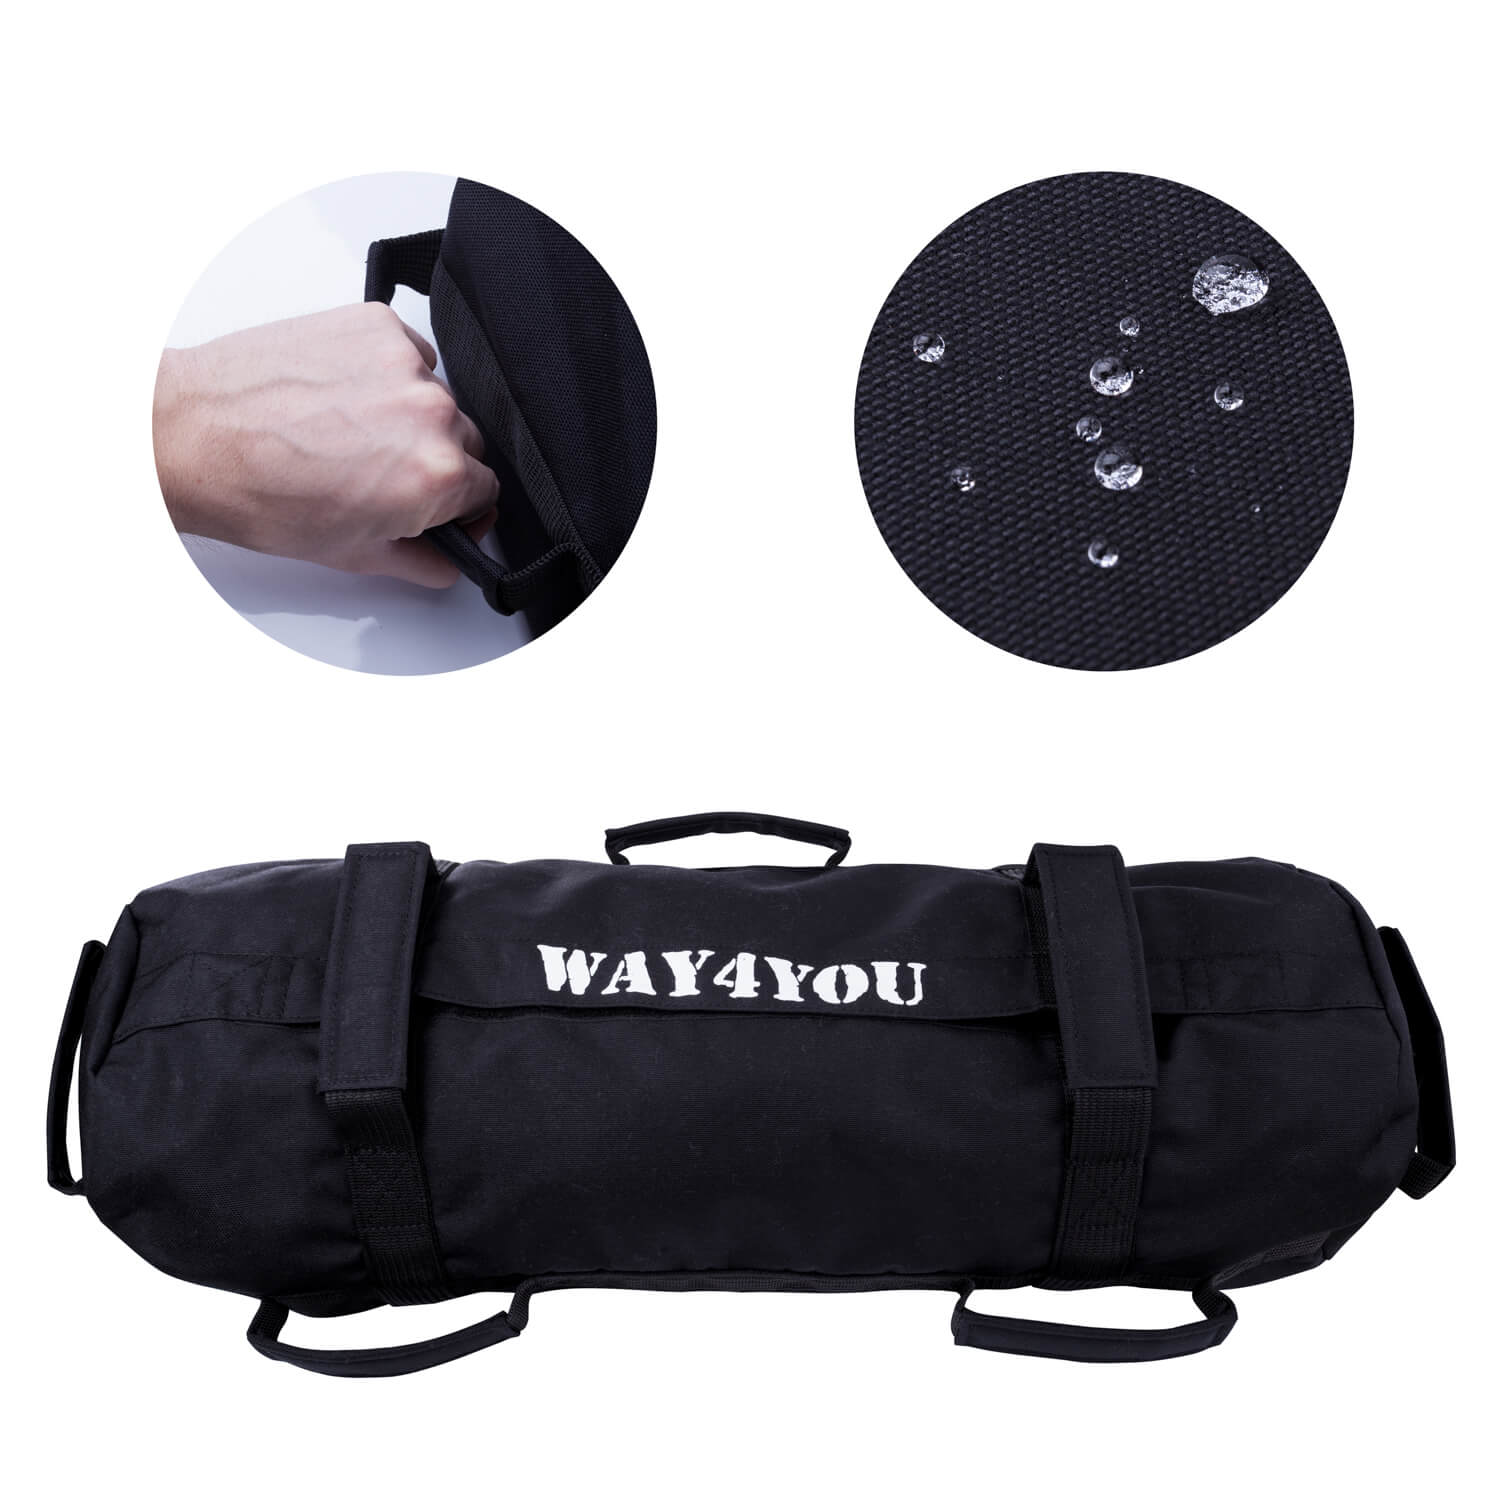 https://way4you.com.ua/images/upload/Sandbag-way4you.jpg